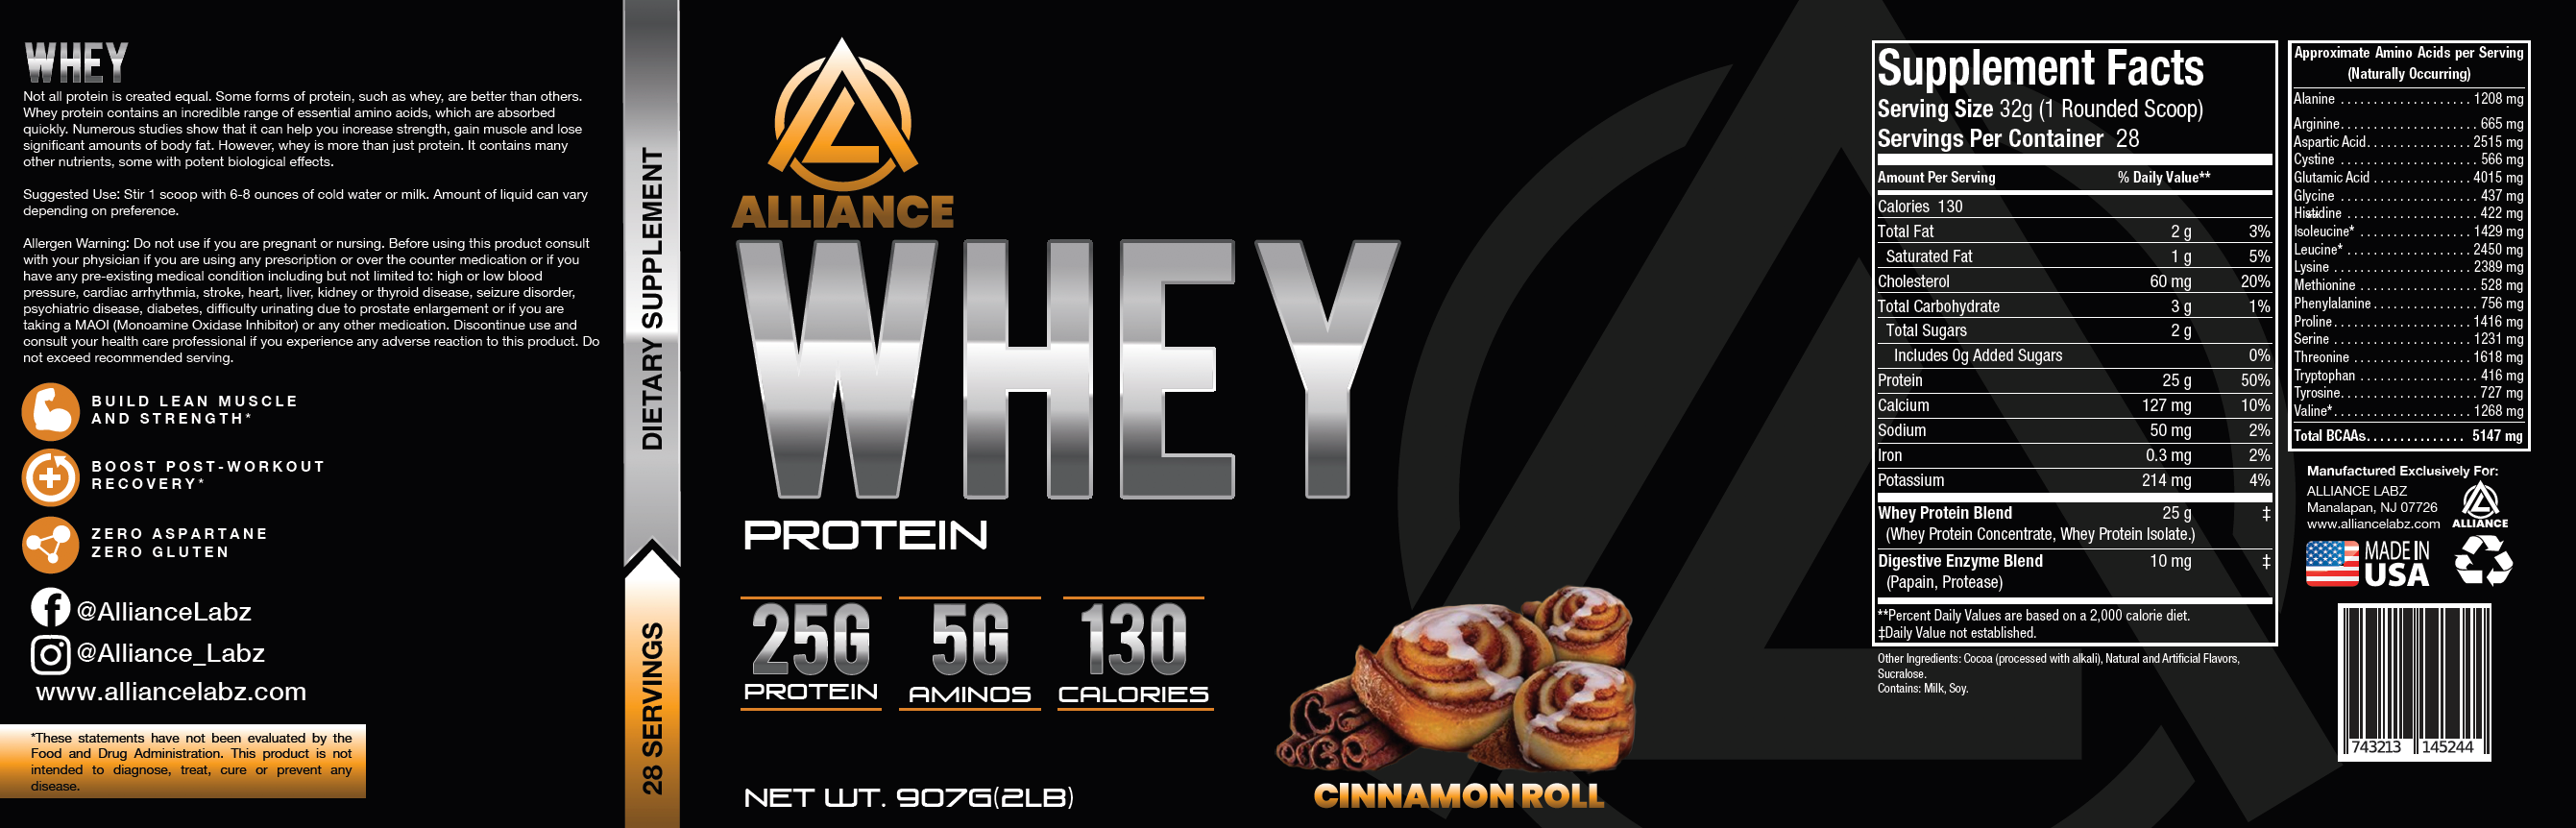 Whey Protein Cinnamon Roll - Facts